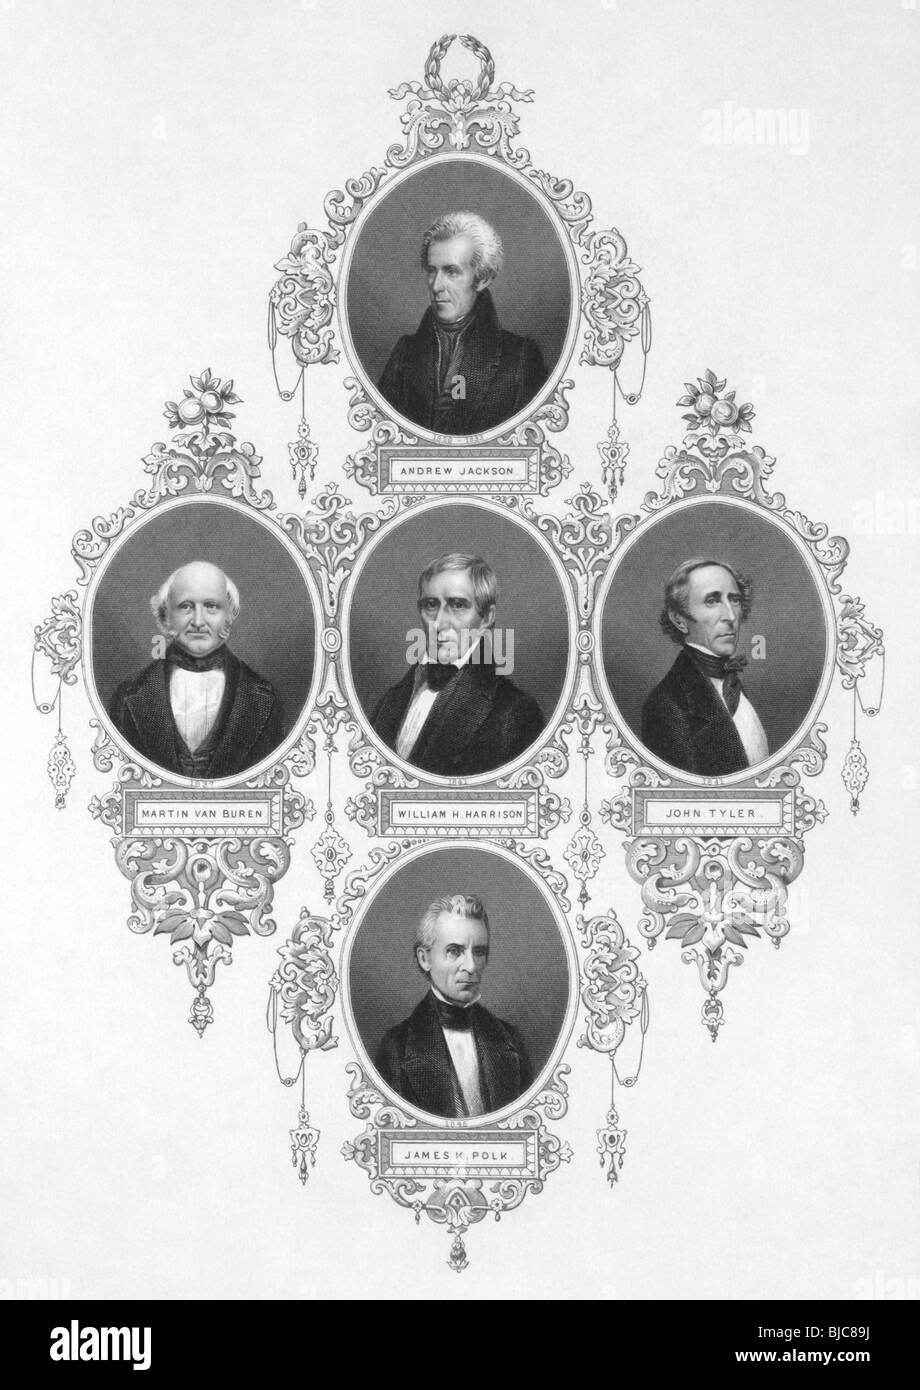 American presidents from 1829 to 1849 on engraving from the 1800s. - Stock Image